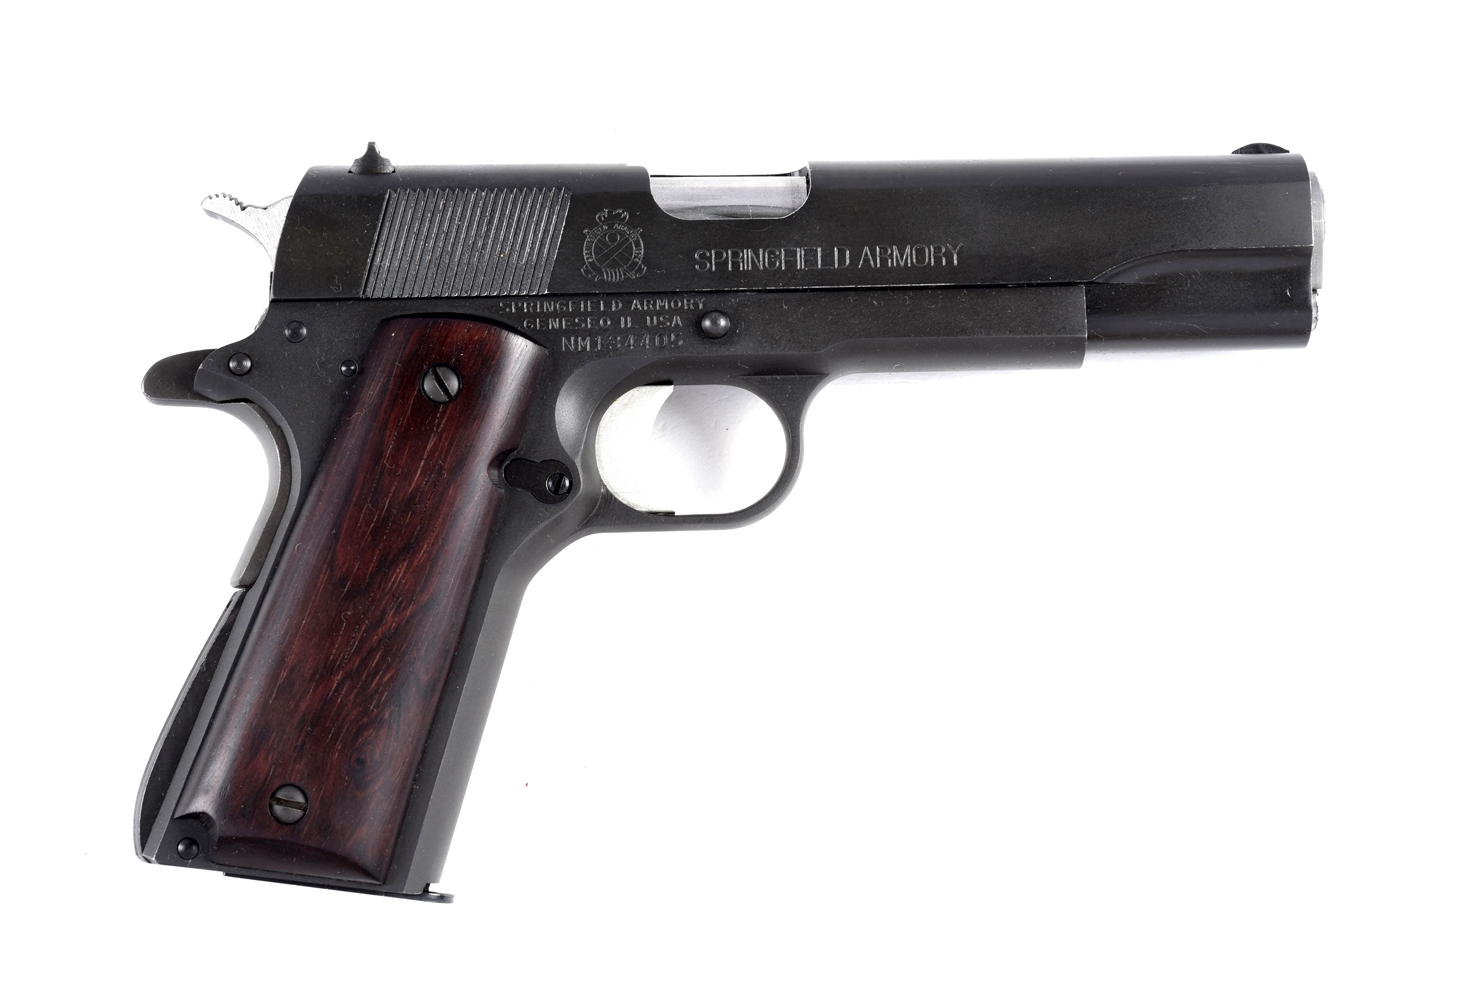 (M) Boxed Springfield Armory Model 1911-A1 Semi Automatic Pistol.